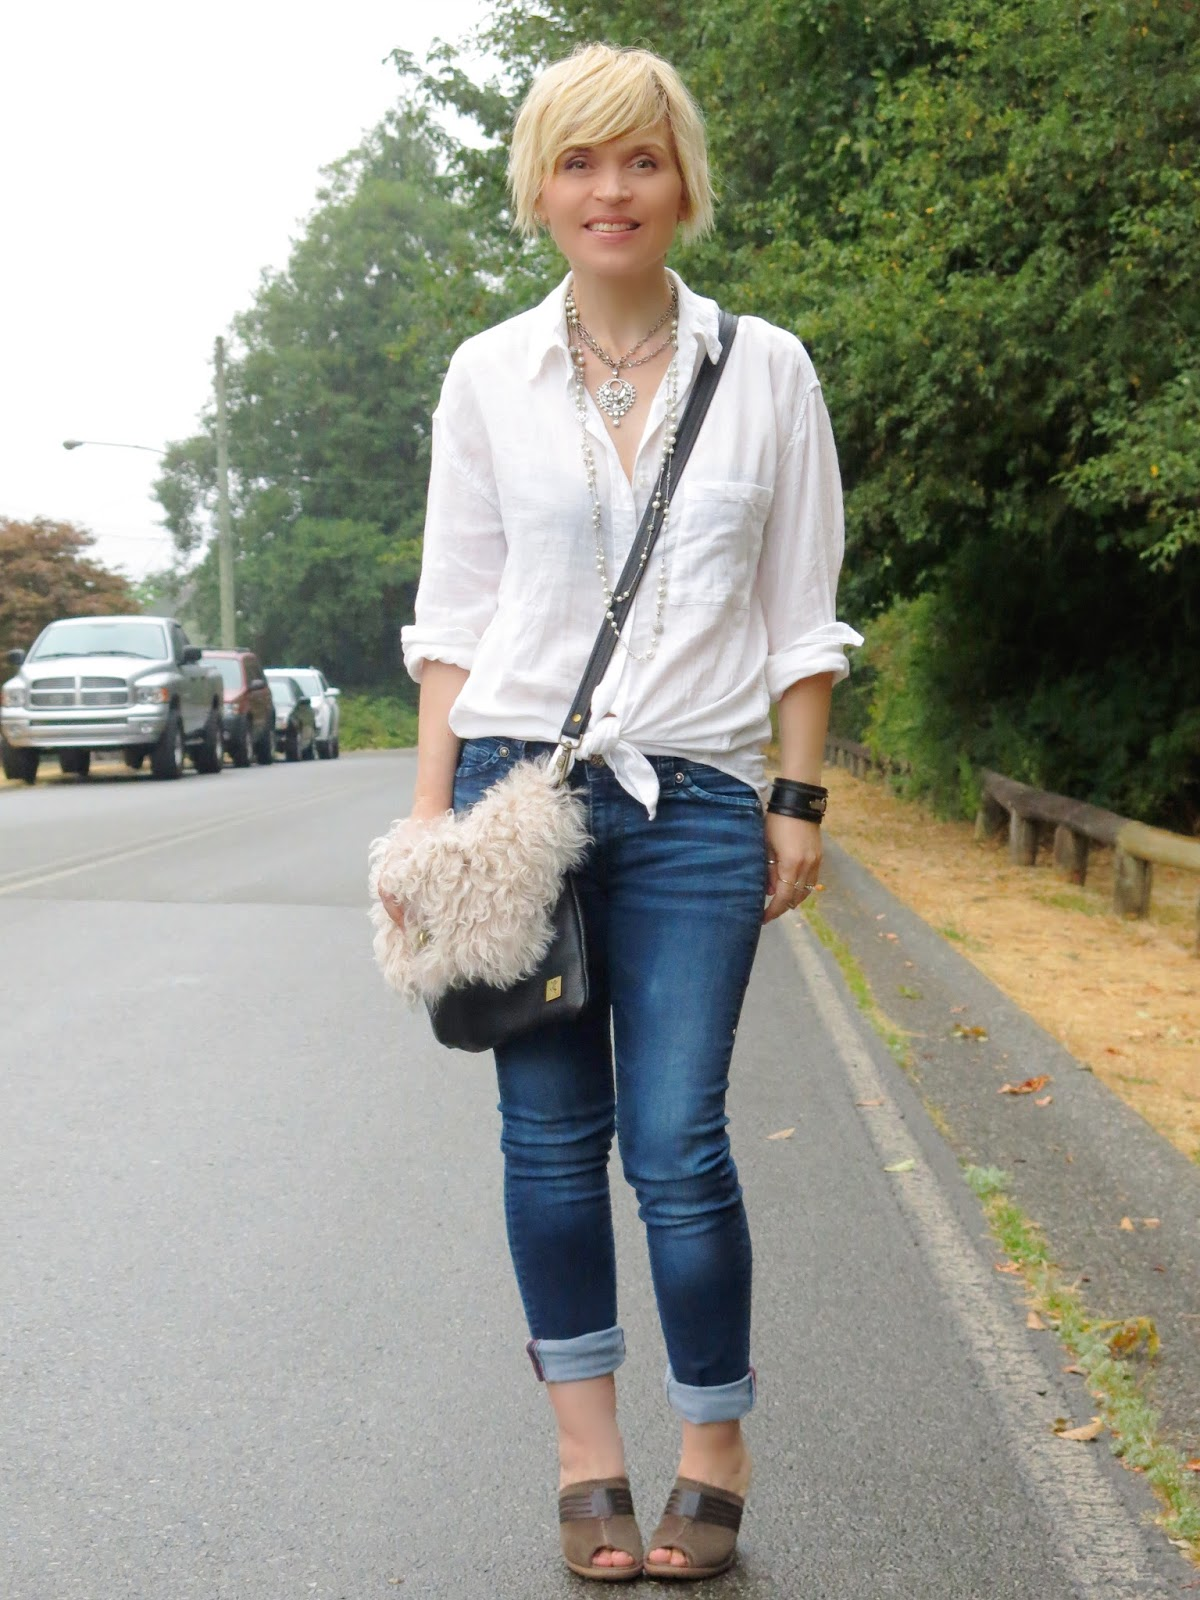 styling a white shirt with blue denim skinnies, open-toe mules, and a furry bag!